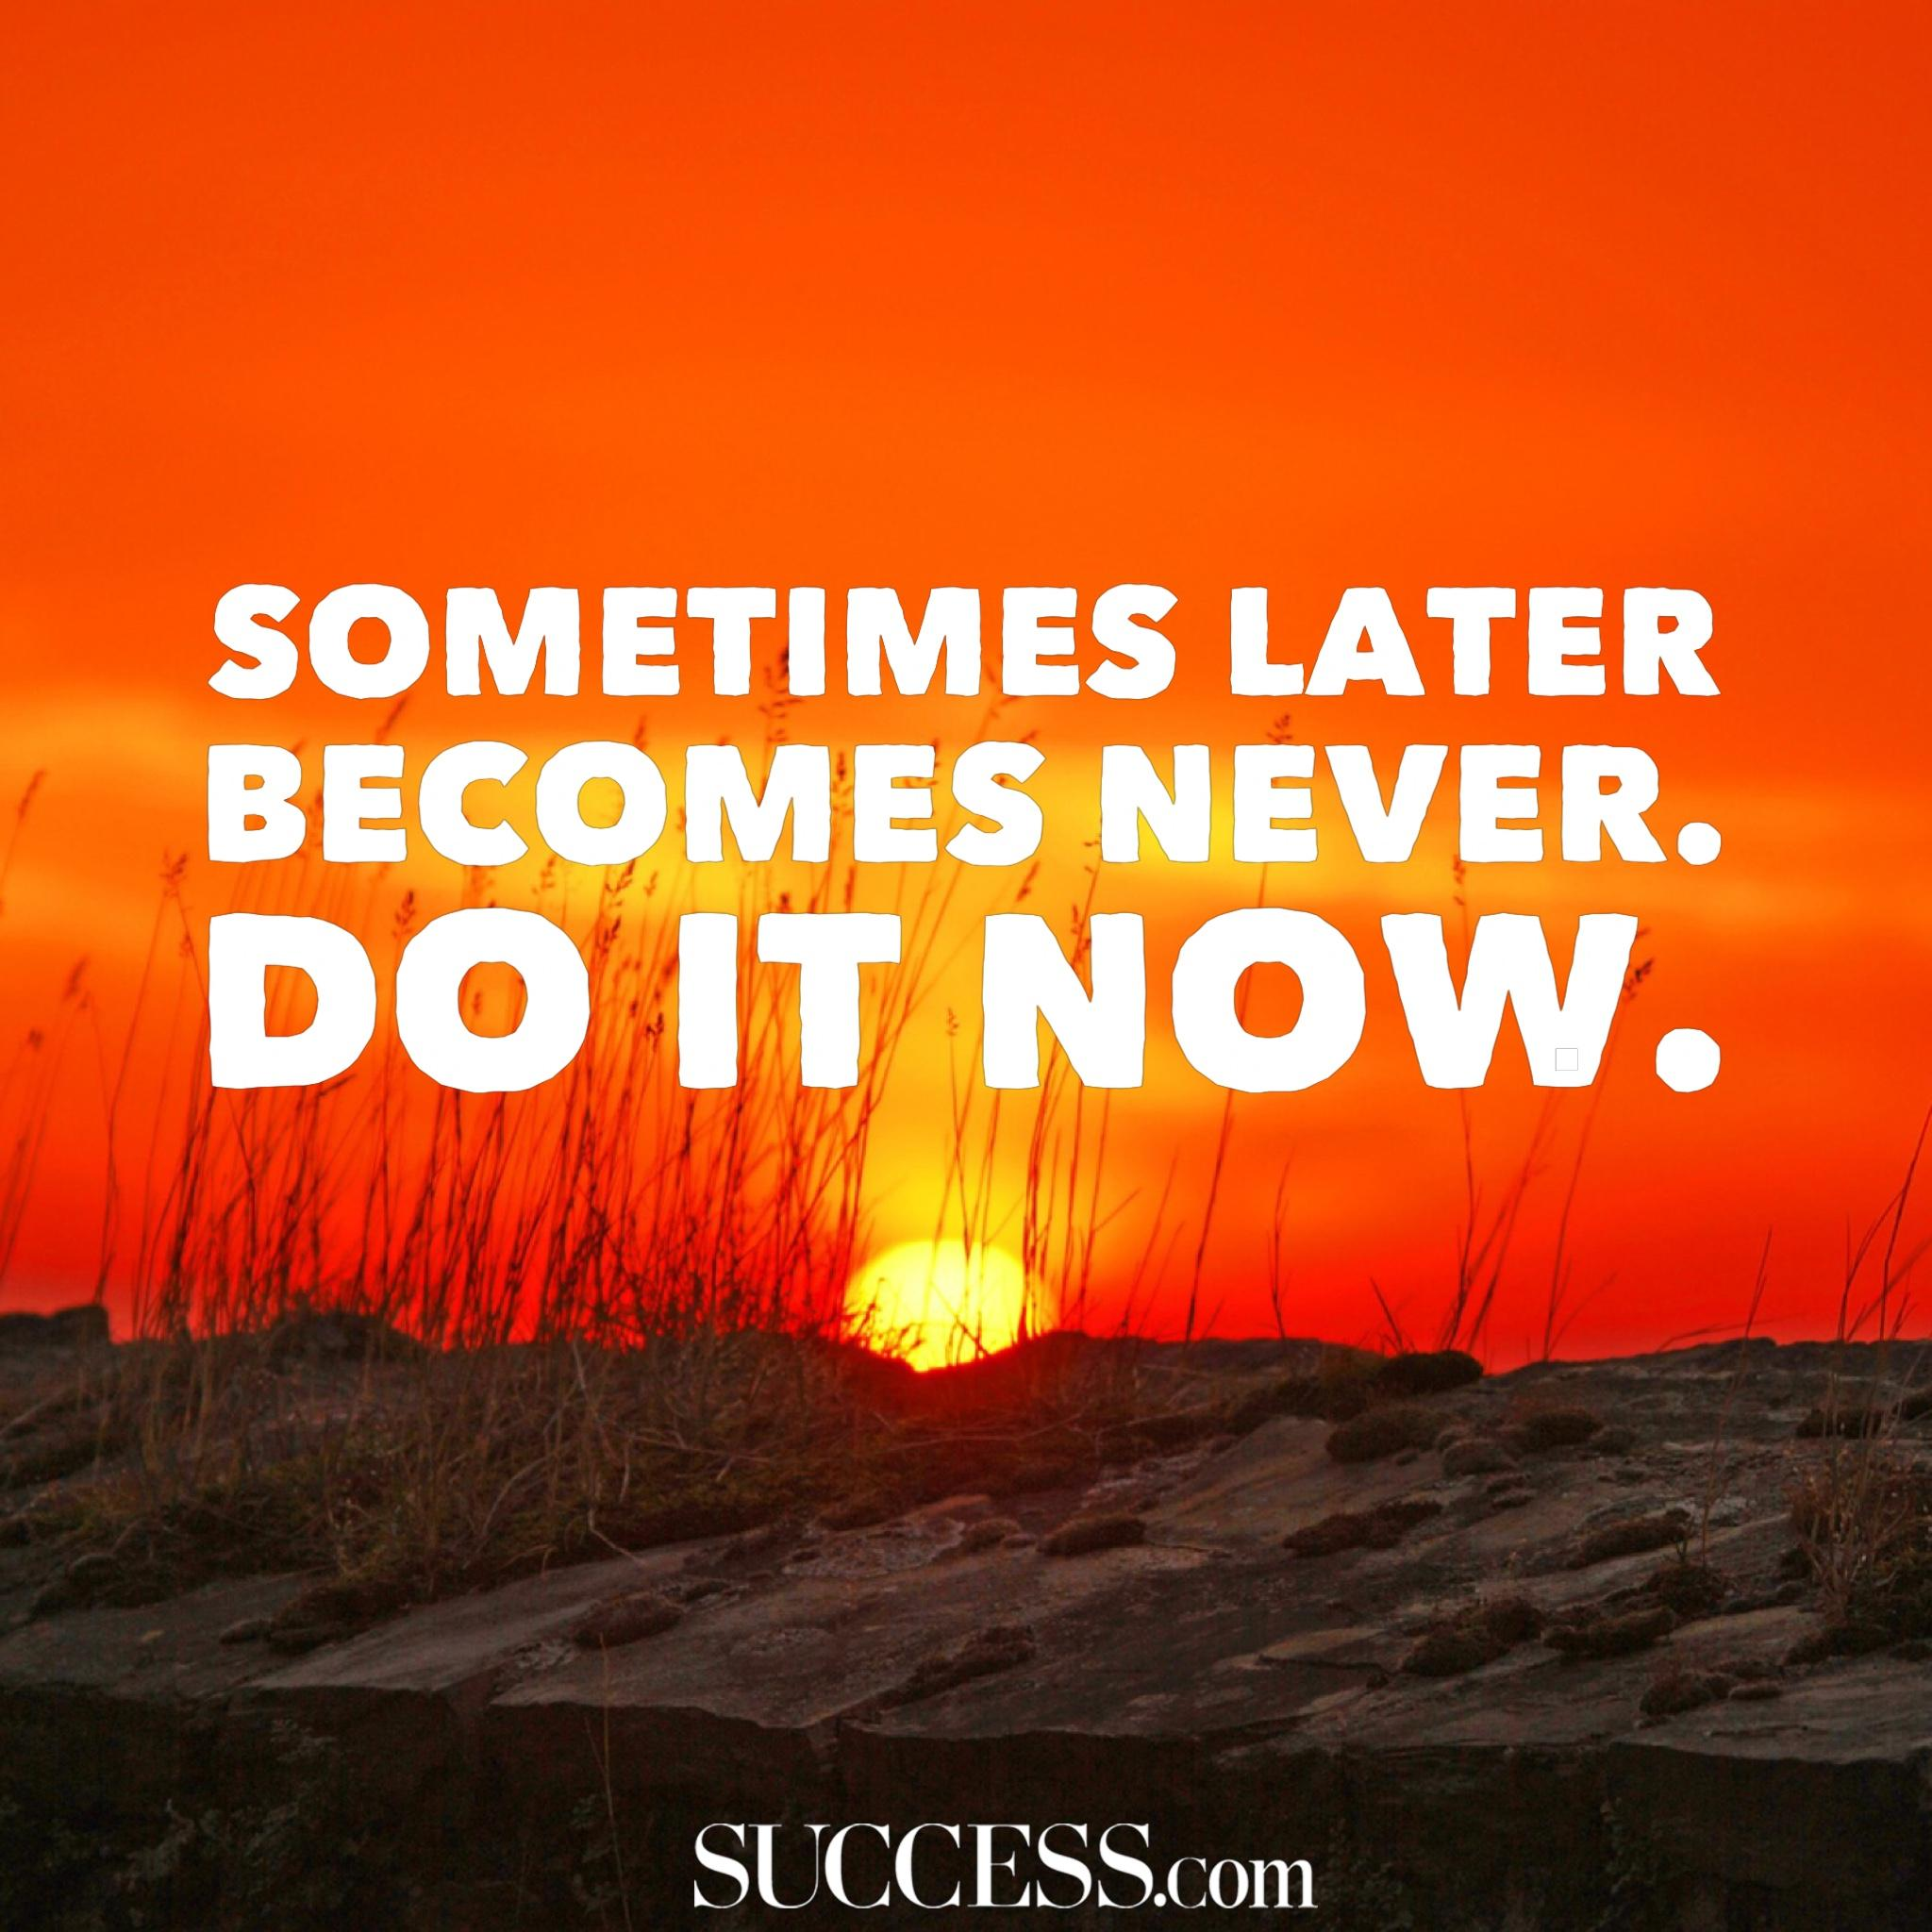 [Image] STOP PROCRASTINATING, DO IT NOW.